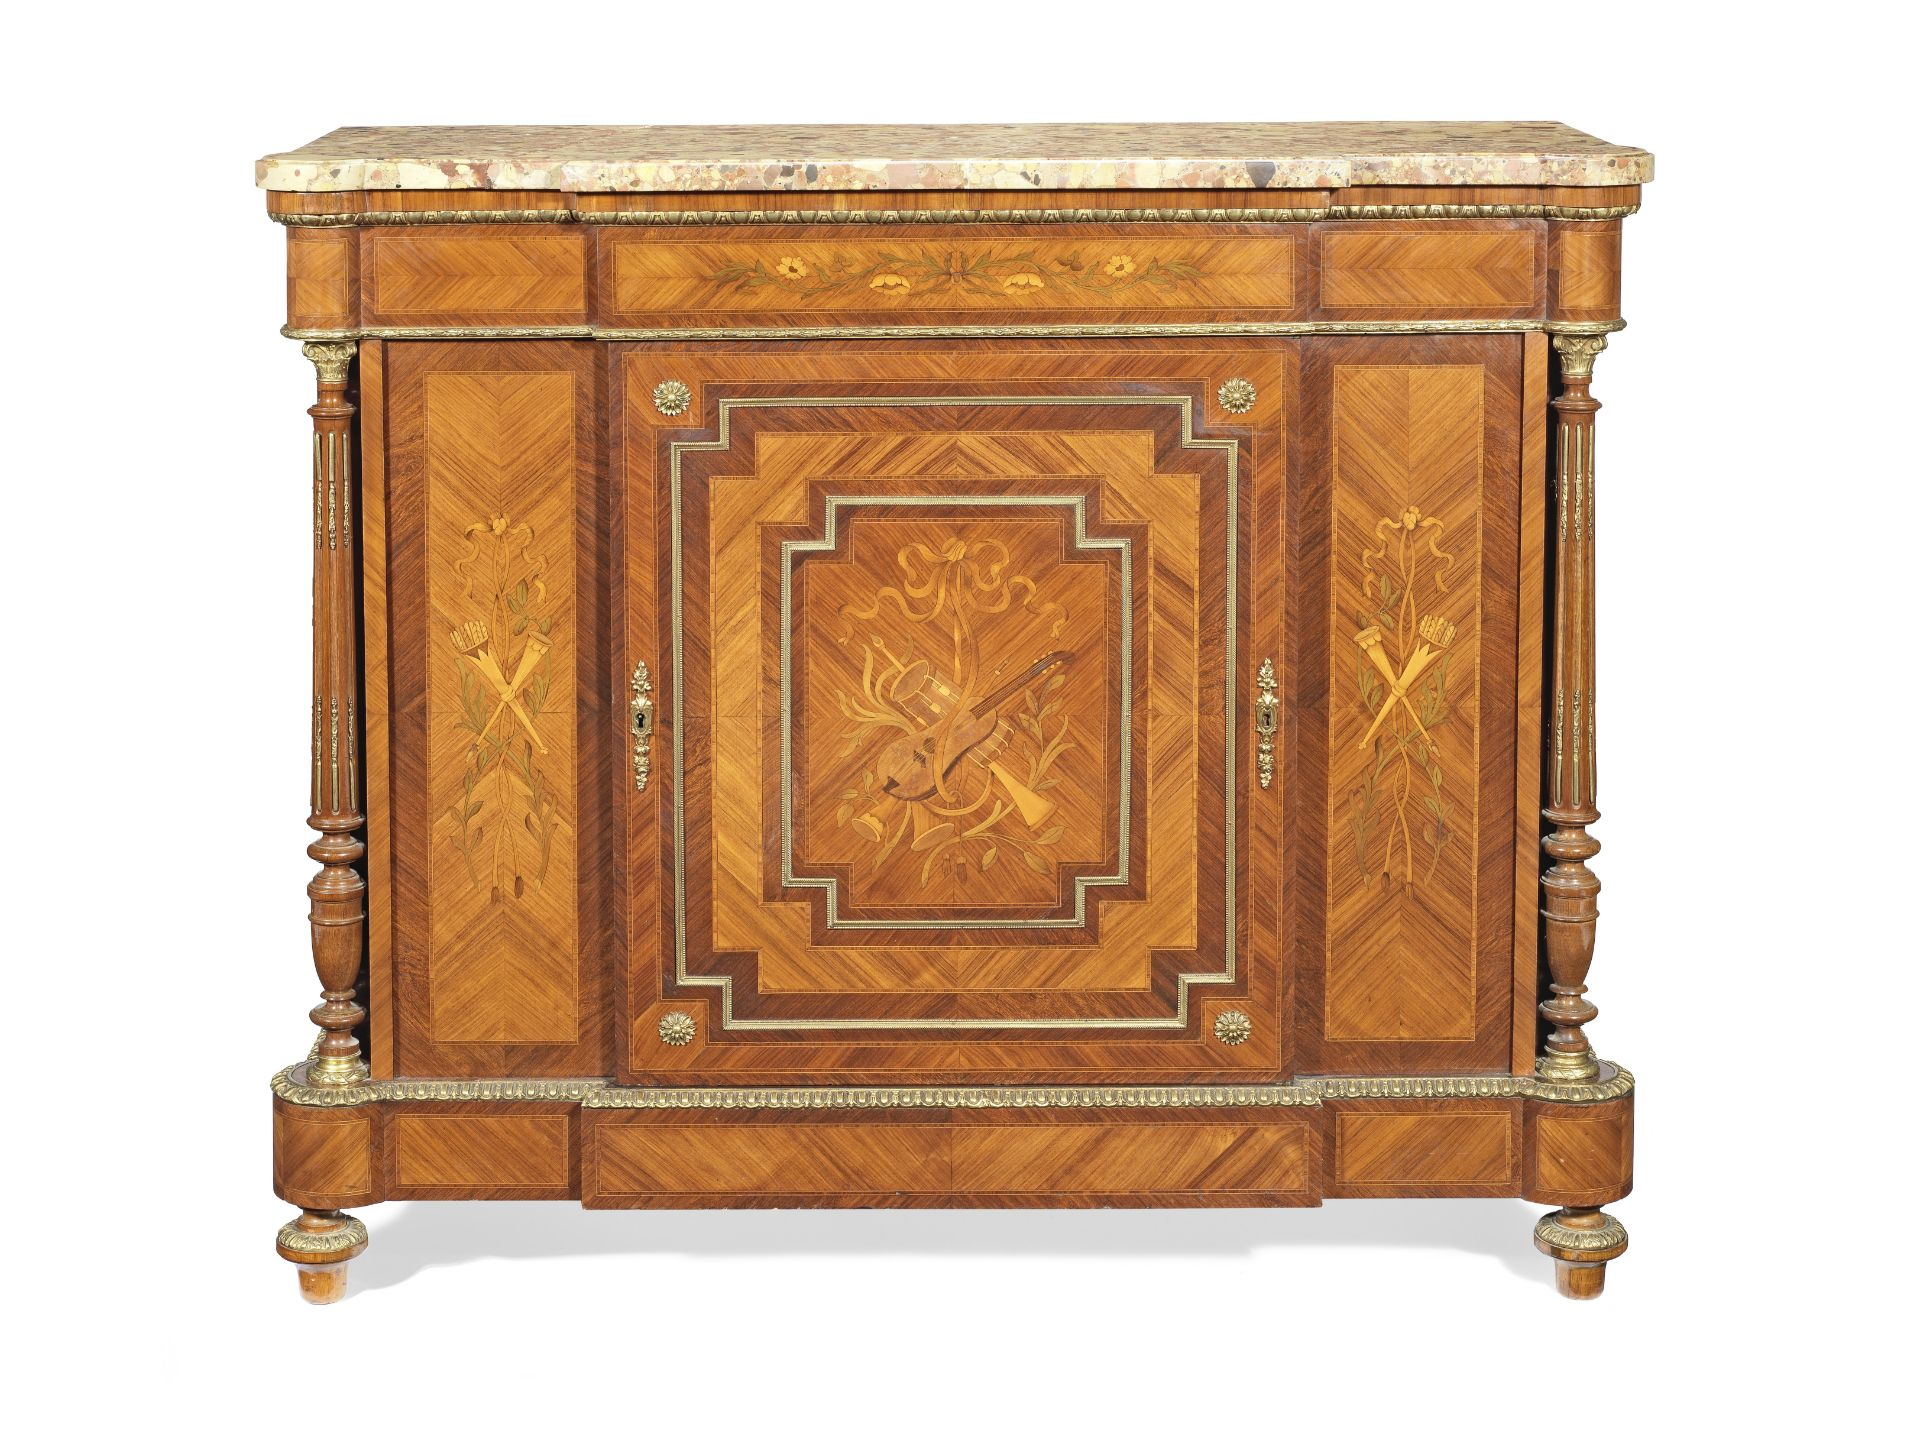 A Napoleon III gilt bronze mounted tulipwood, rosewood and marquetry hauteur d'appui or low cabinet